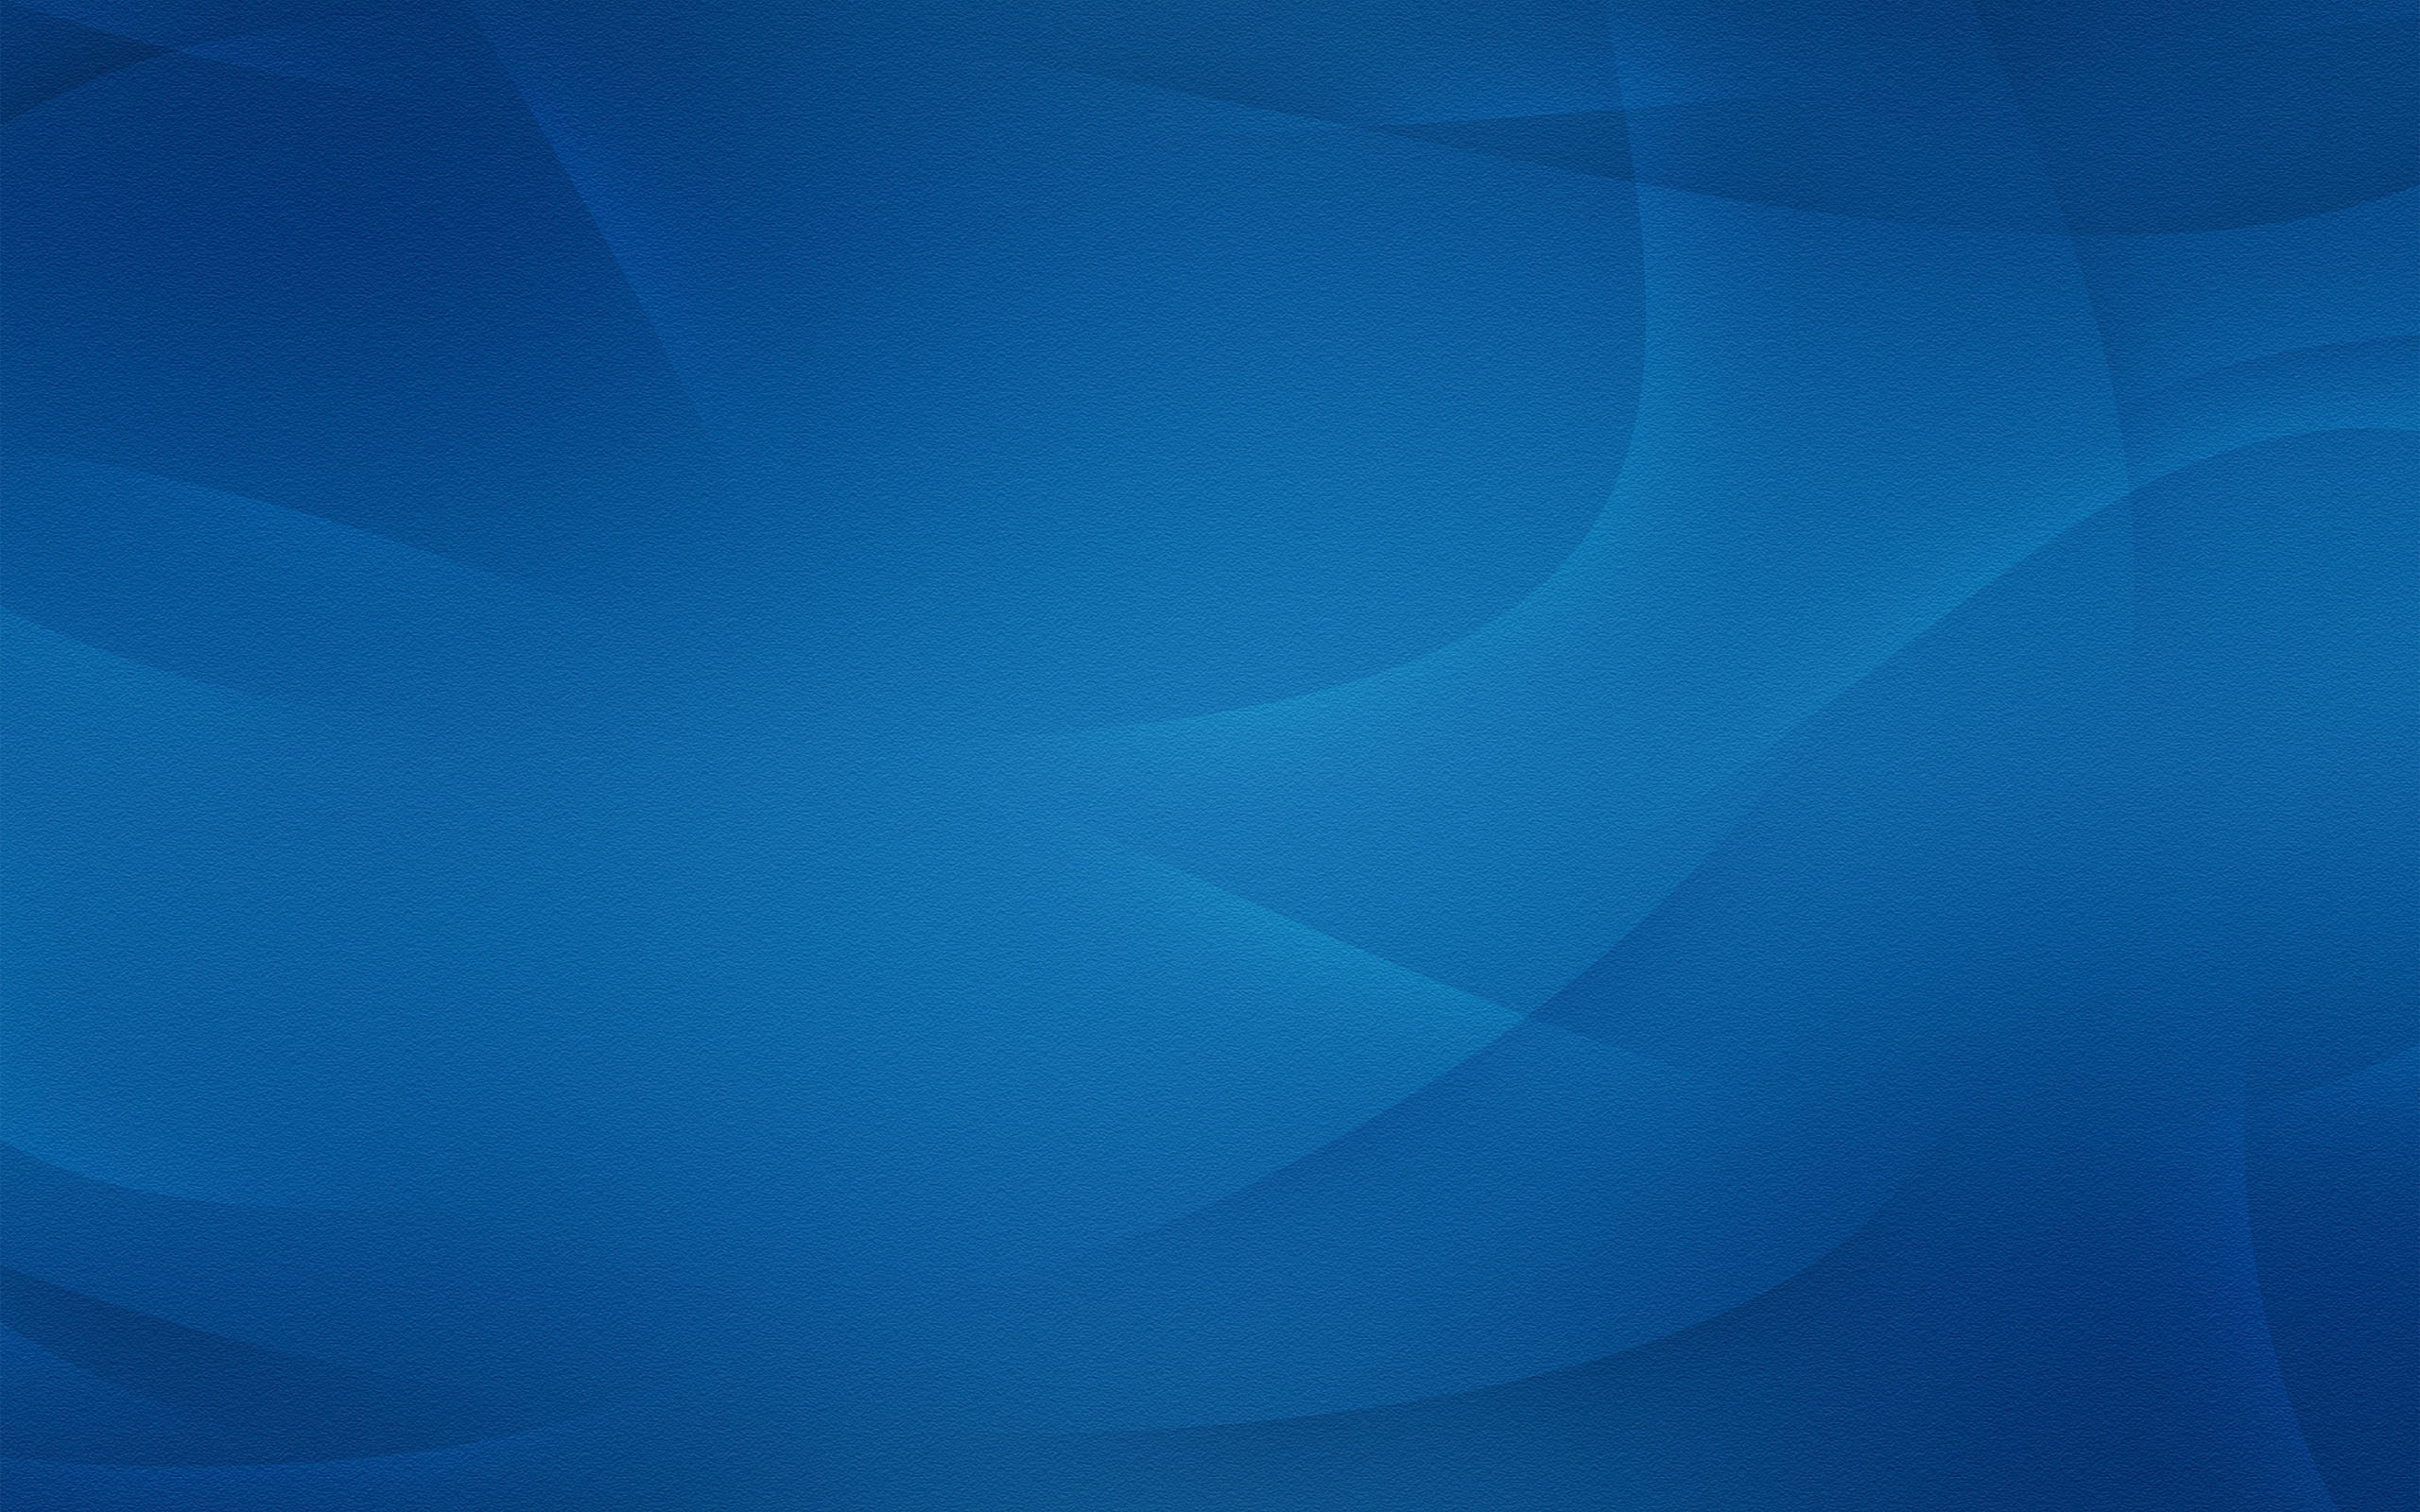 Hd Abstract Blue Background: Blue Abstract Wallpaper For PC